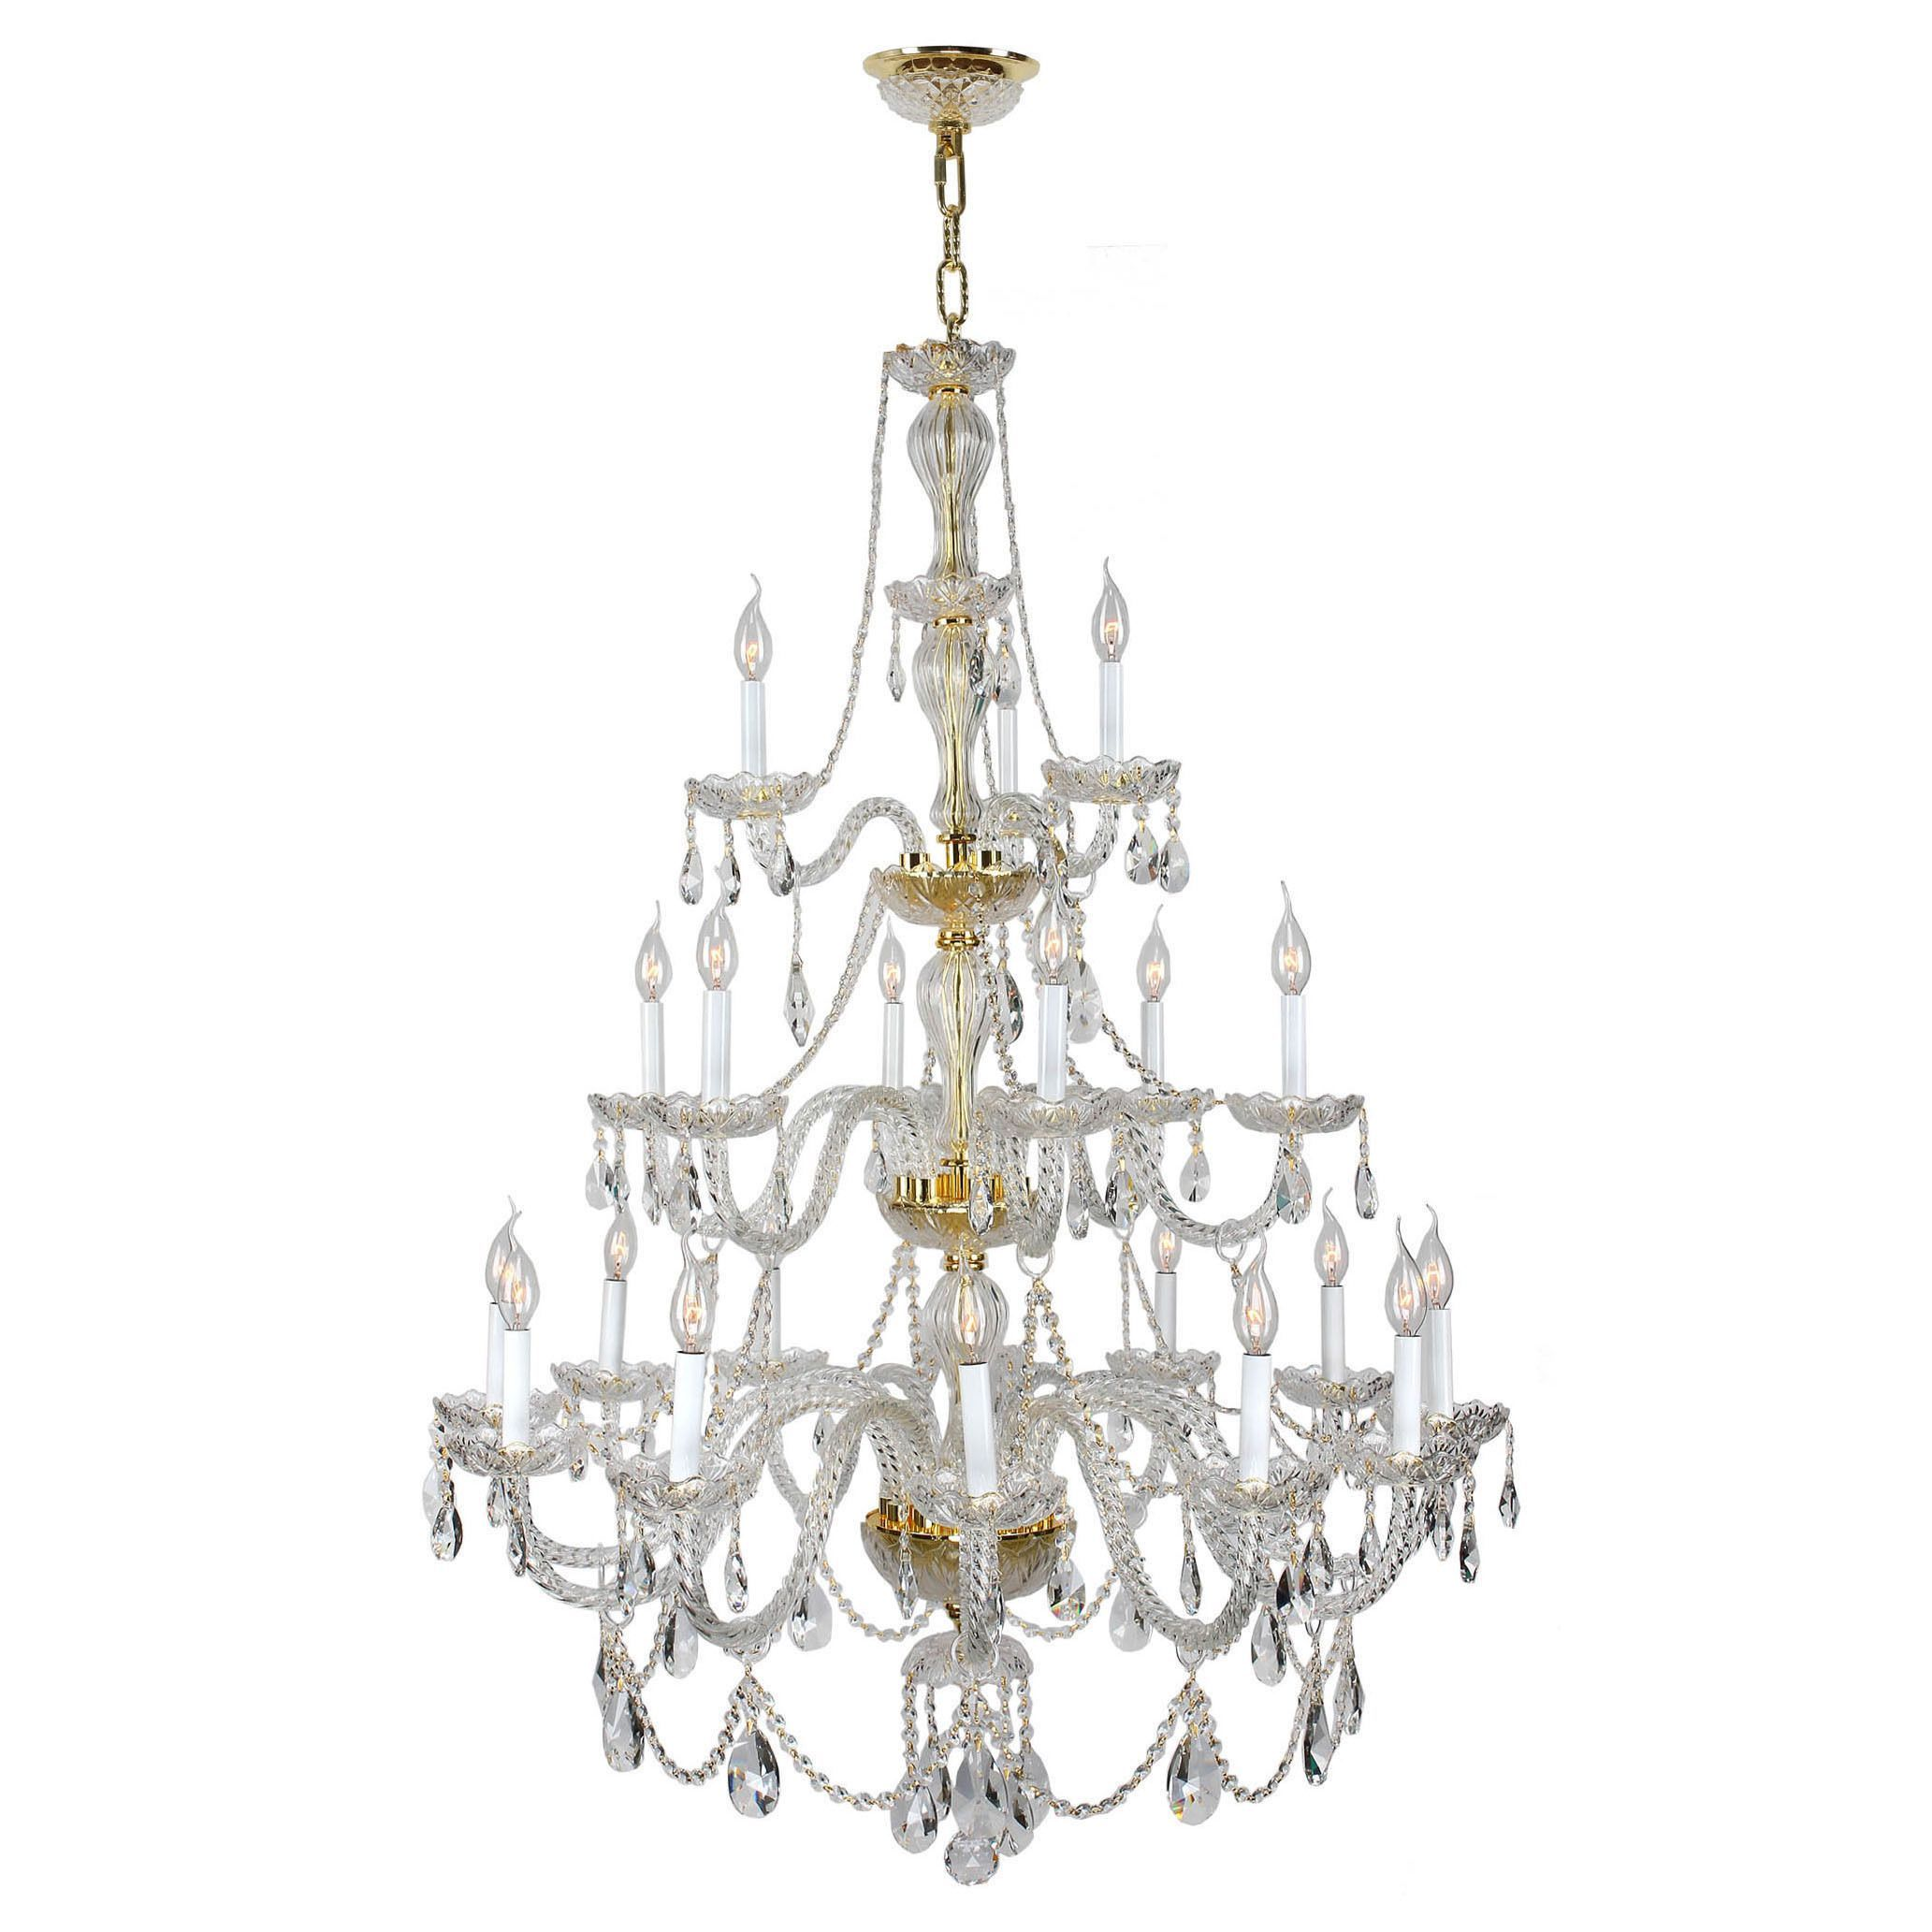 Brilliance Lighting And Chandeliers Venetian Italian Style 21 Light Gold Finish Crystal Candle Chandelier Three 3 Tier 8os099g38 Clear Aluminum